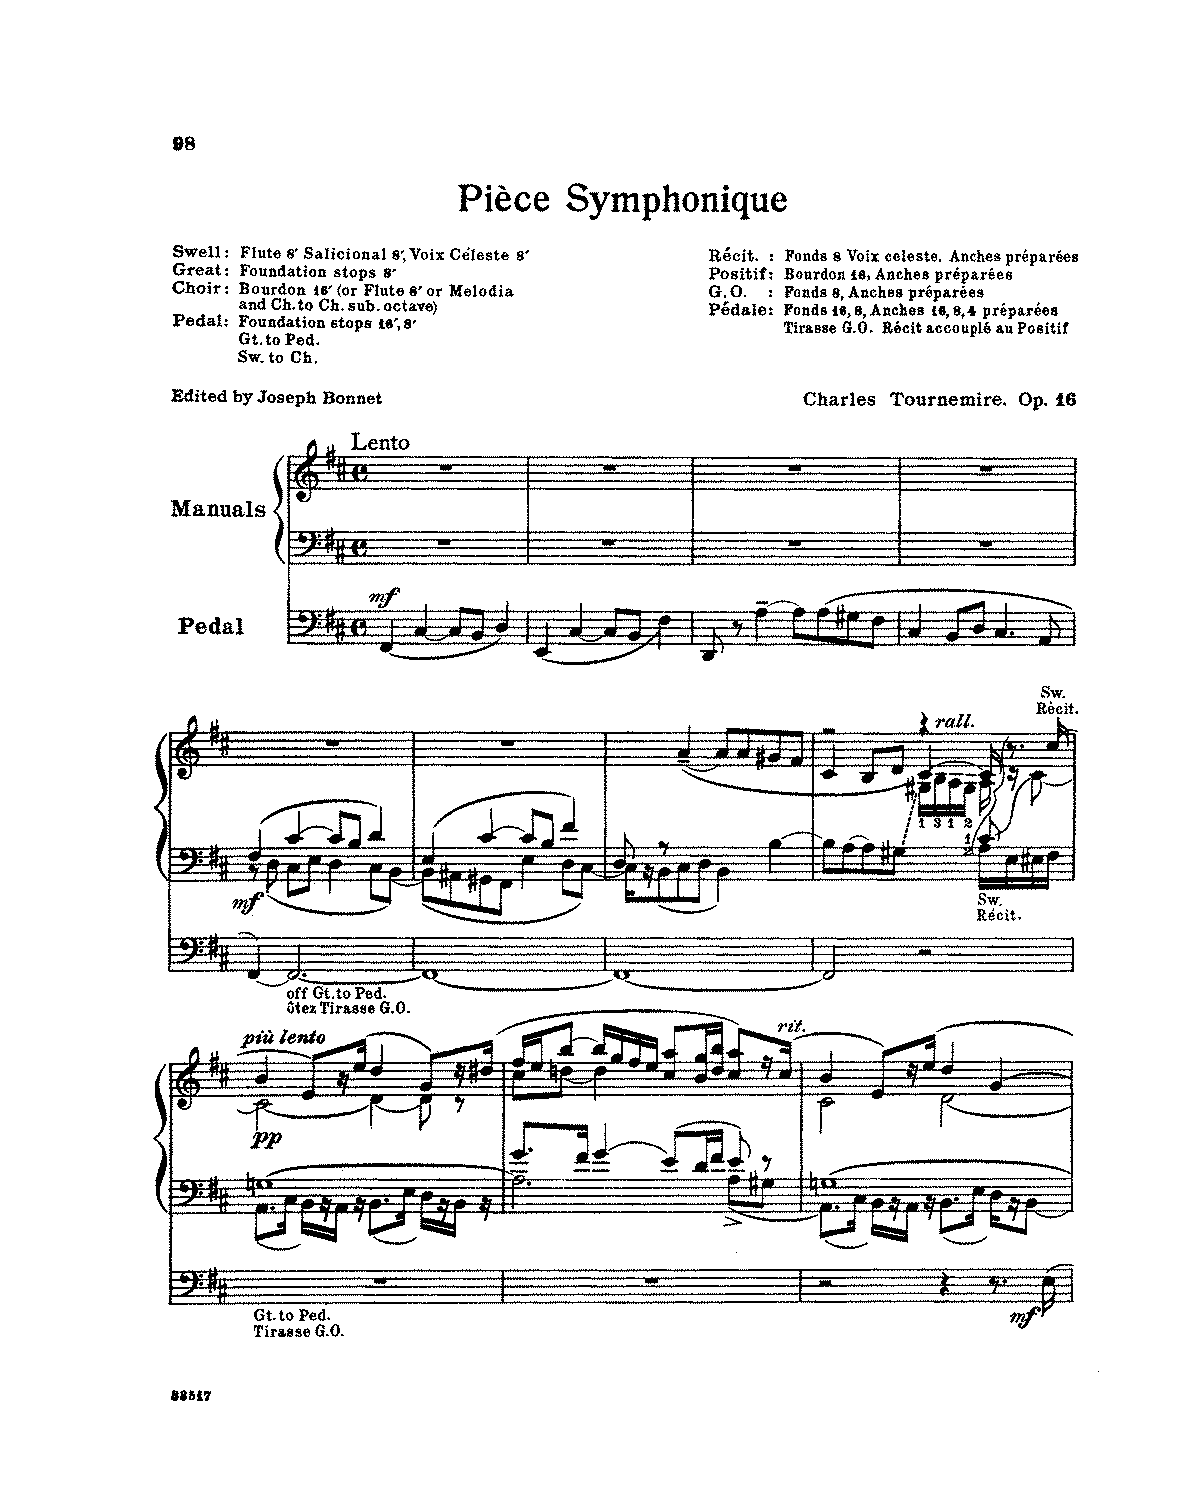 PMLP09336-Tournemire - Piece Symphonique.pdf